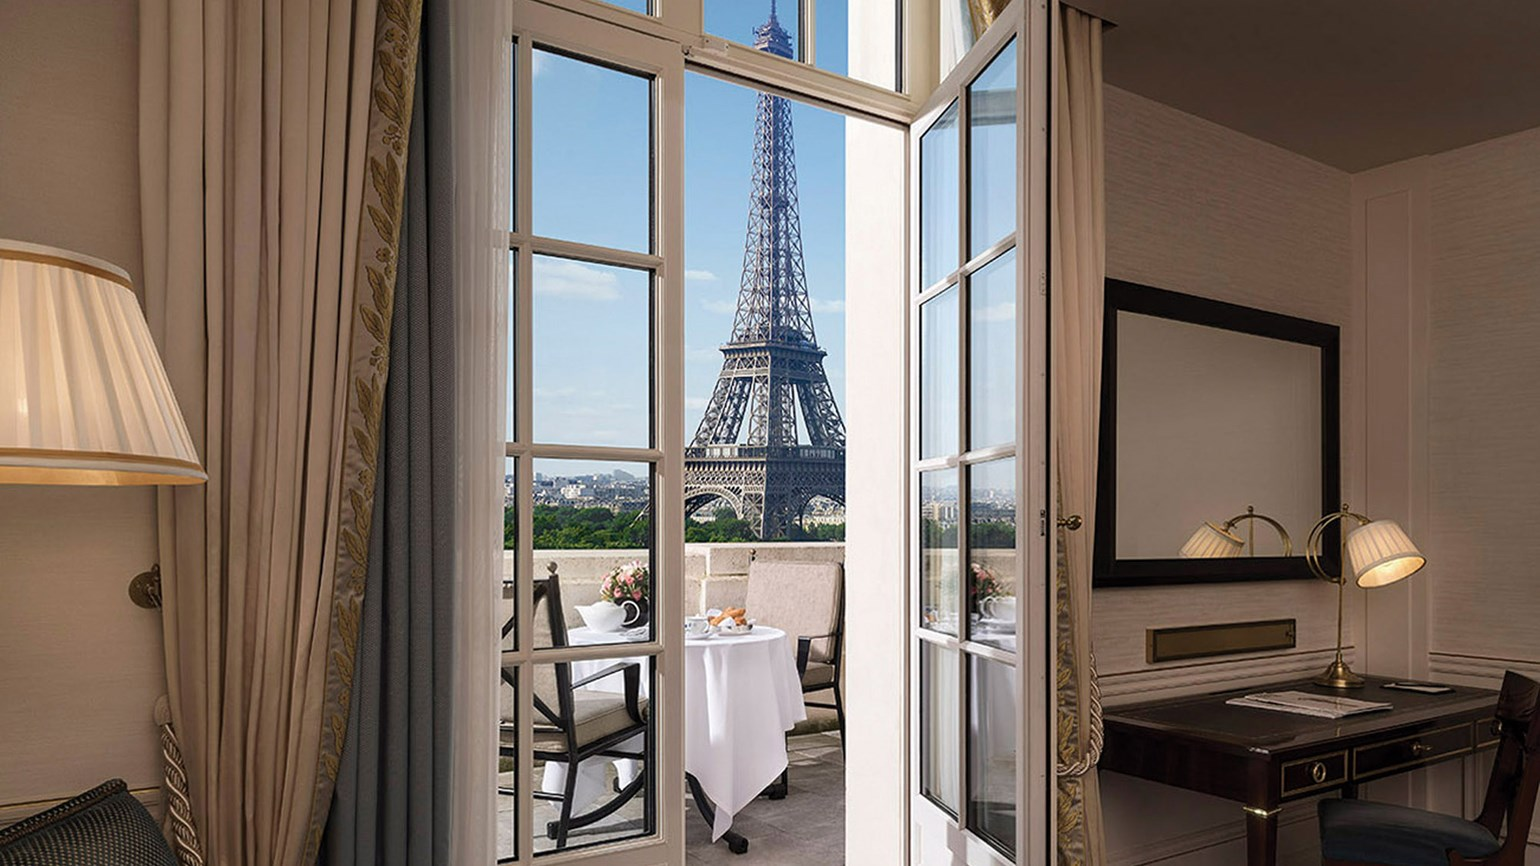 Paris' Shangri-La impresses as an opulent paradise